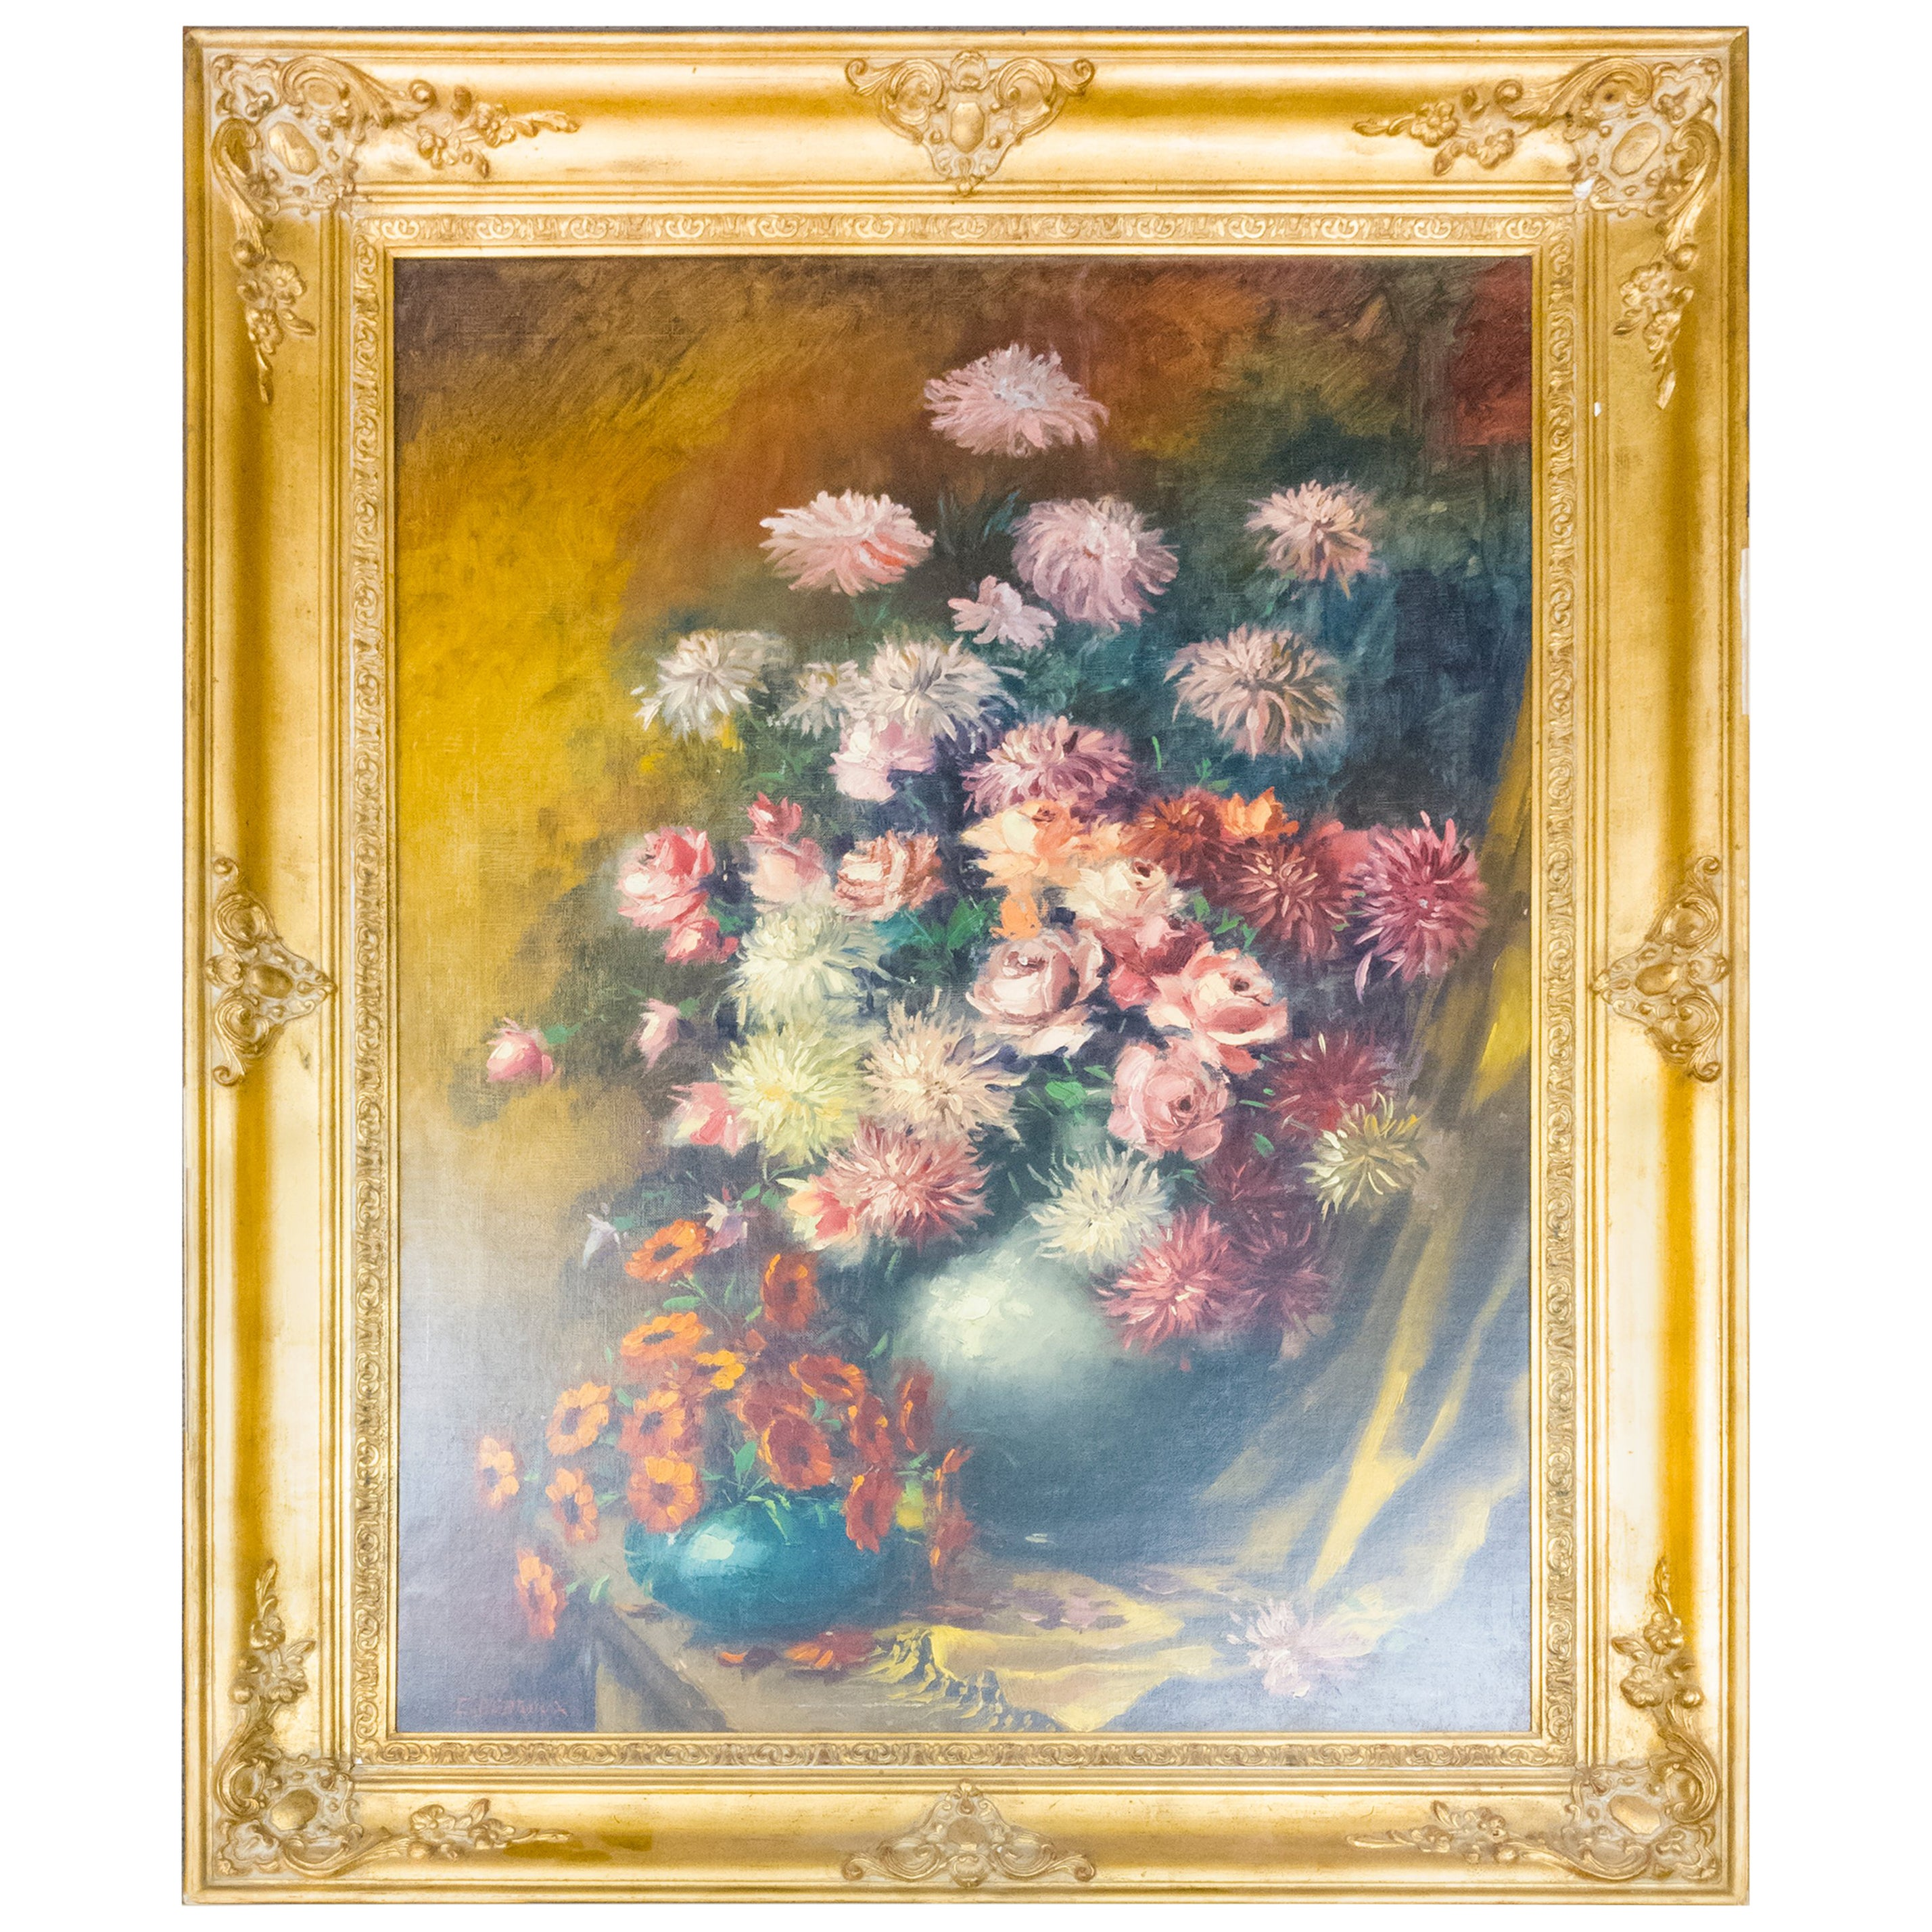 Still Life with Flowers Oil on Canvas Painting Artist E. Debroux